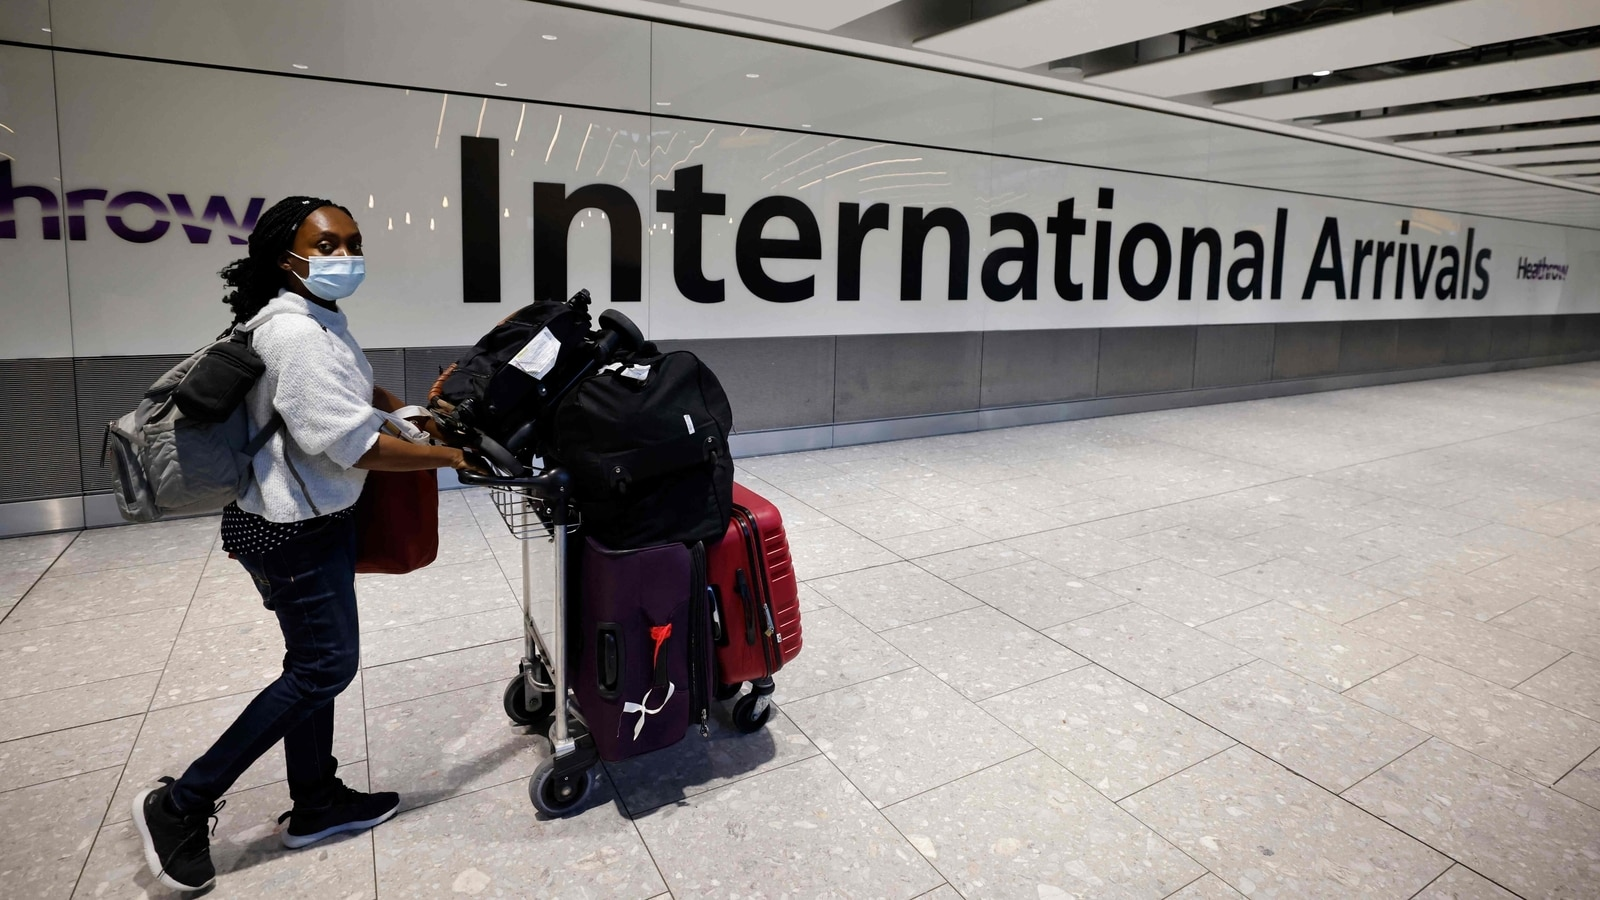 Image Centre issues norms for international arrivals, makes negative RT-PCR test must - Hindustan Times